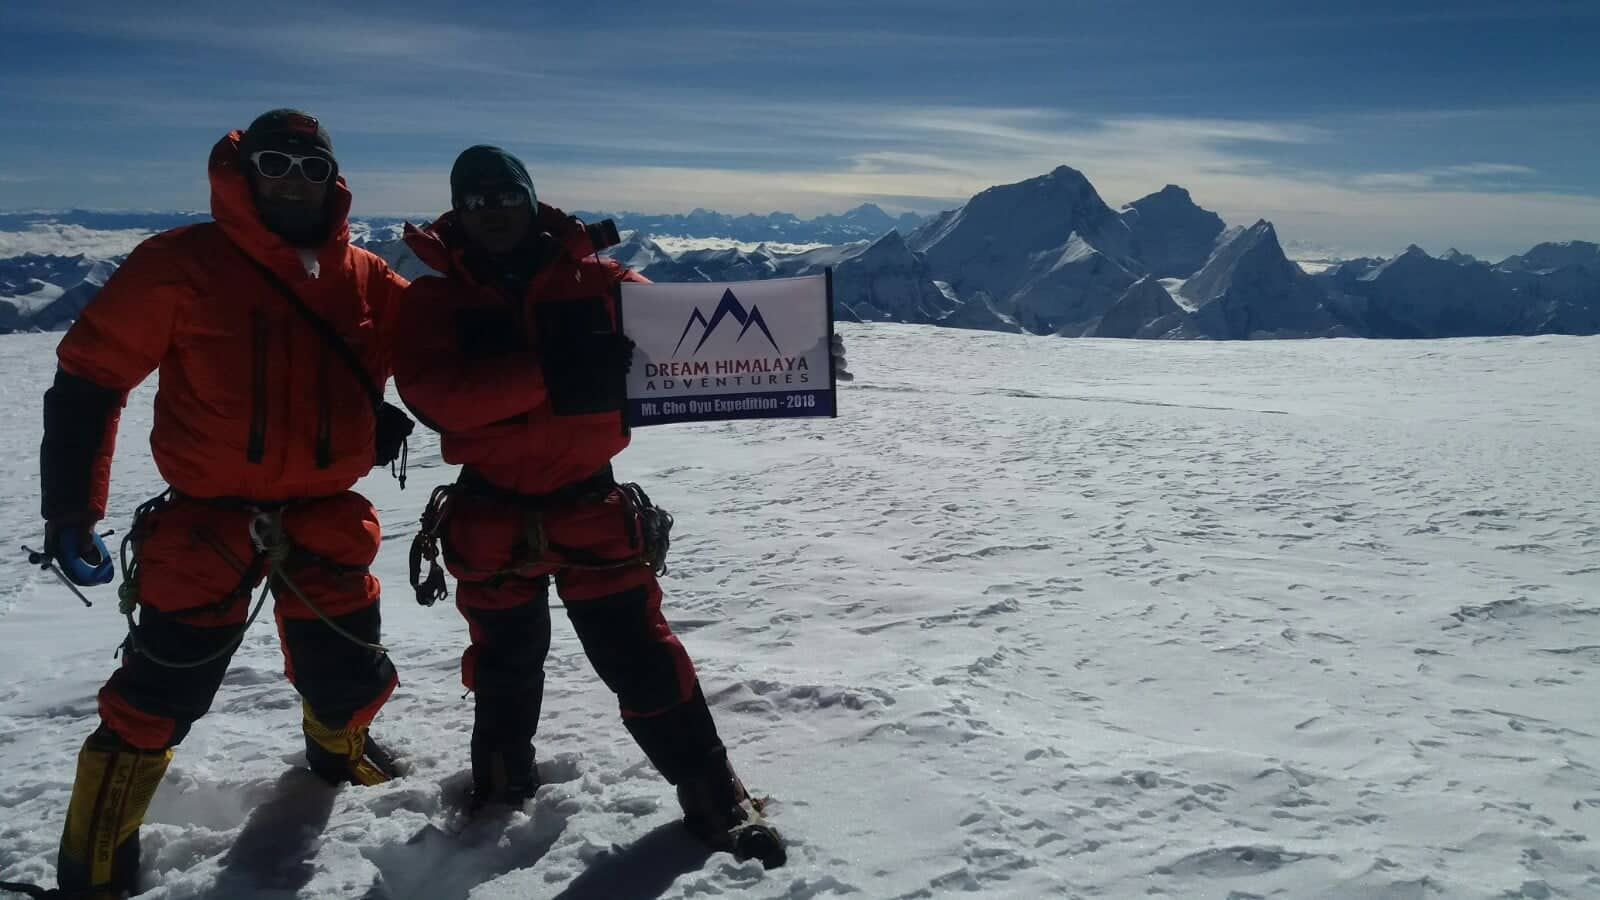 Furi sherpa on the summit of mt Cho Oyu expedition